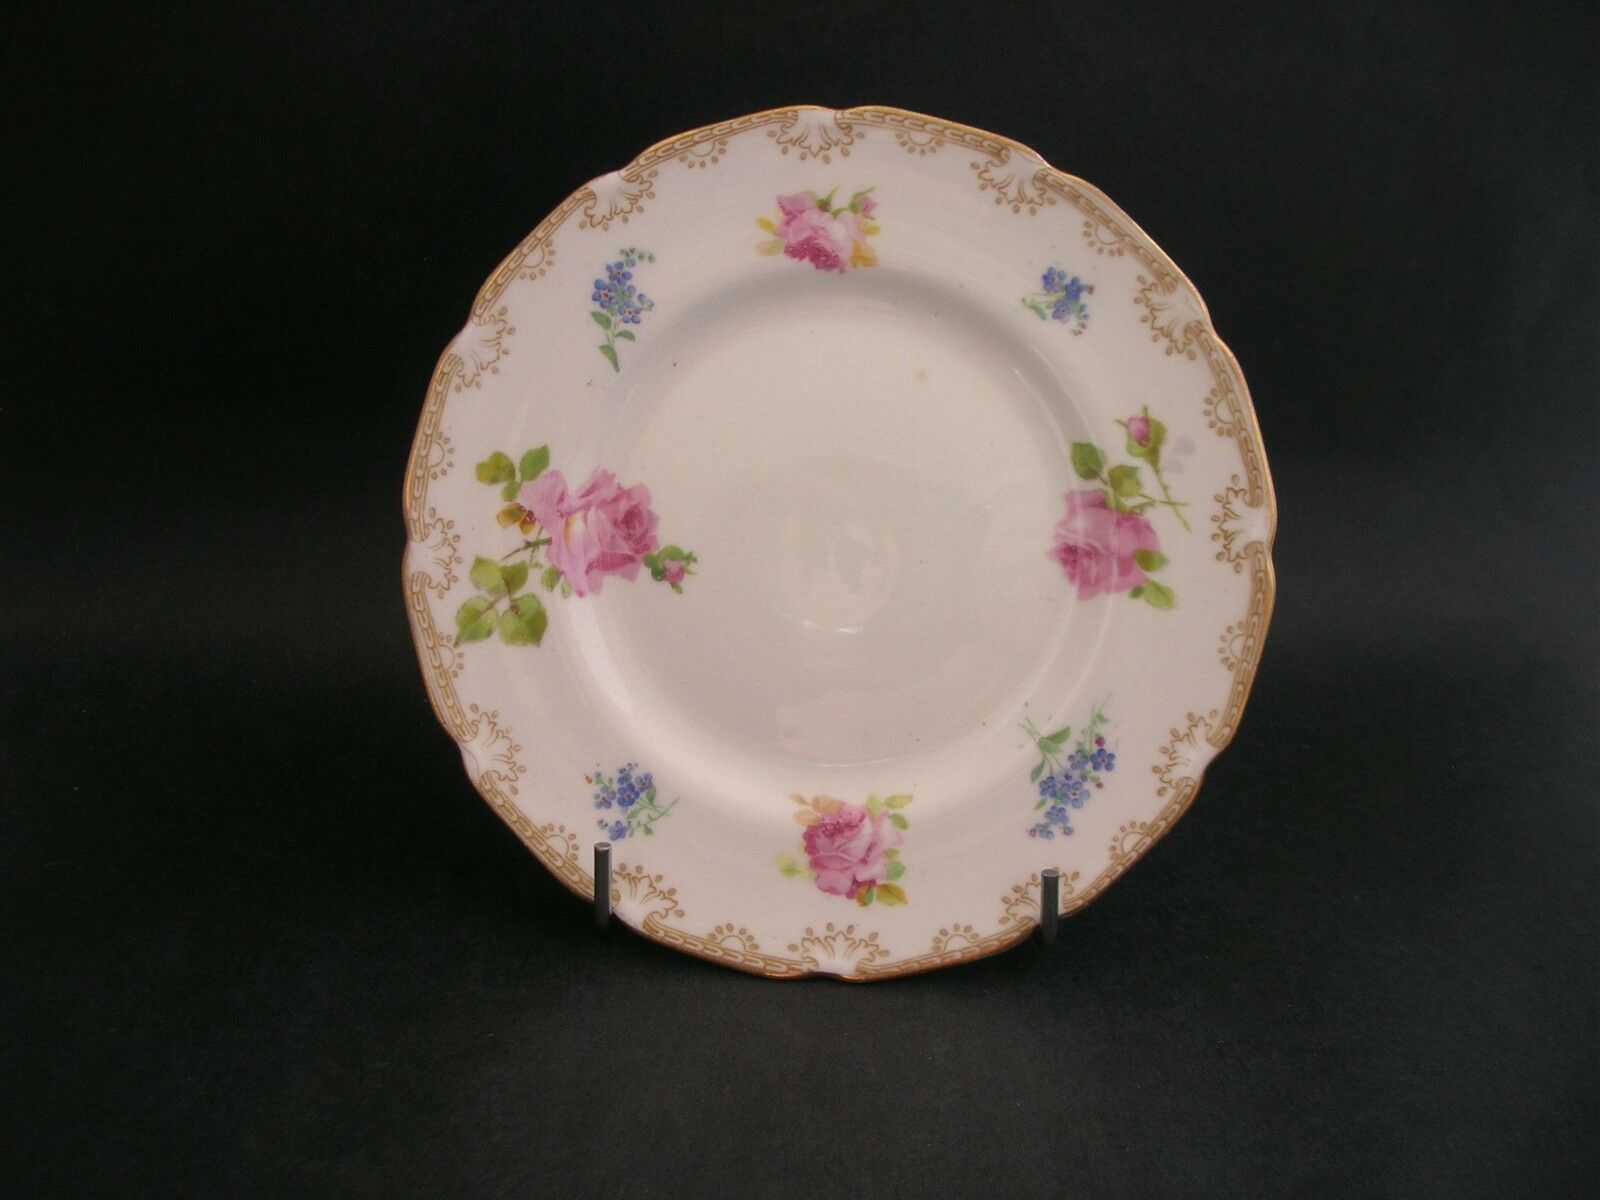 China Replacement Royal Doulton Civil Service Co-Op Sydney Antique Tea Plate 1 of 6 China Replacement ... & CHINA REPLACEMENT ROYAL Doulton Civil Service Co-Op Sydney Antique ...